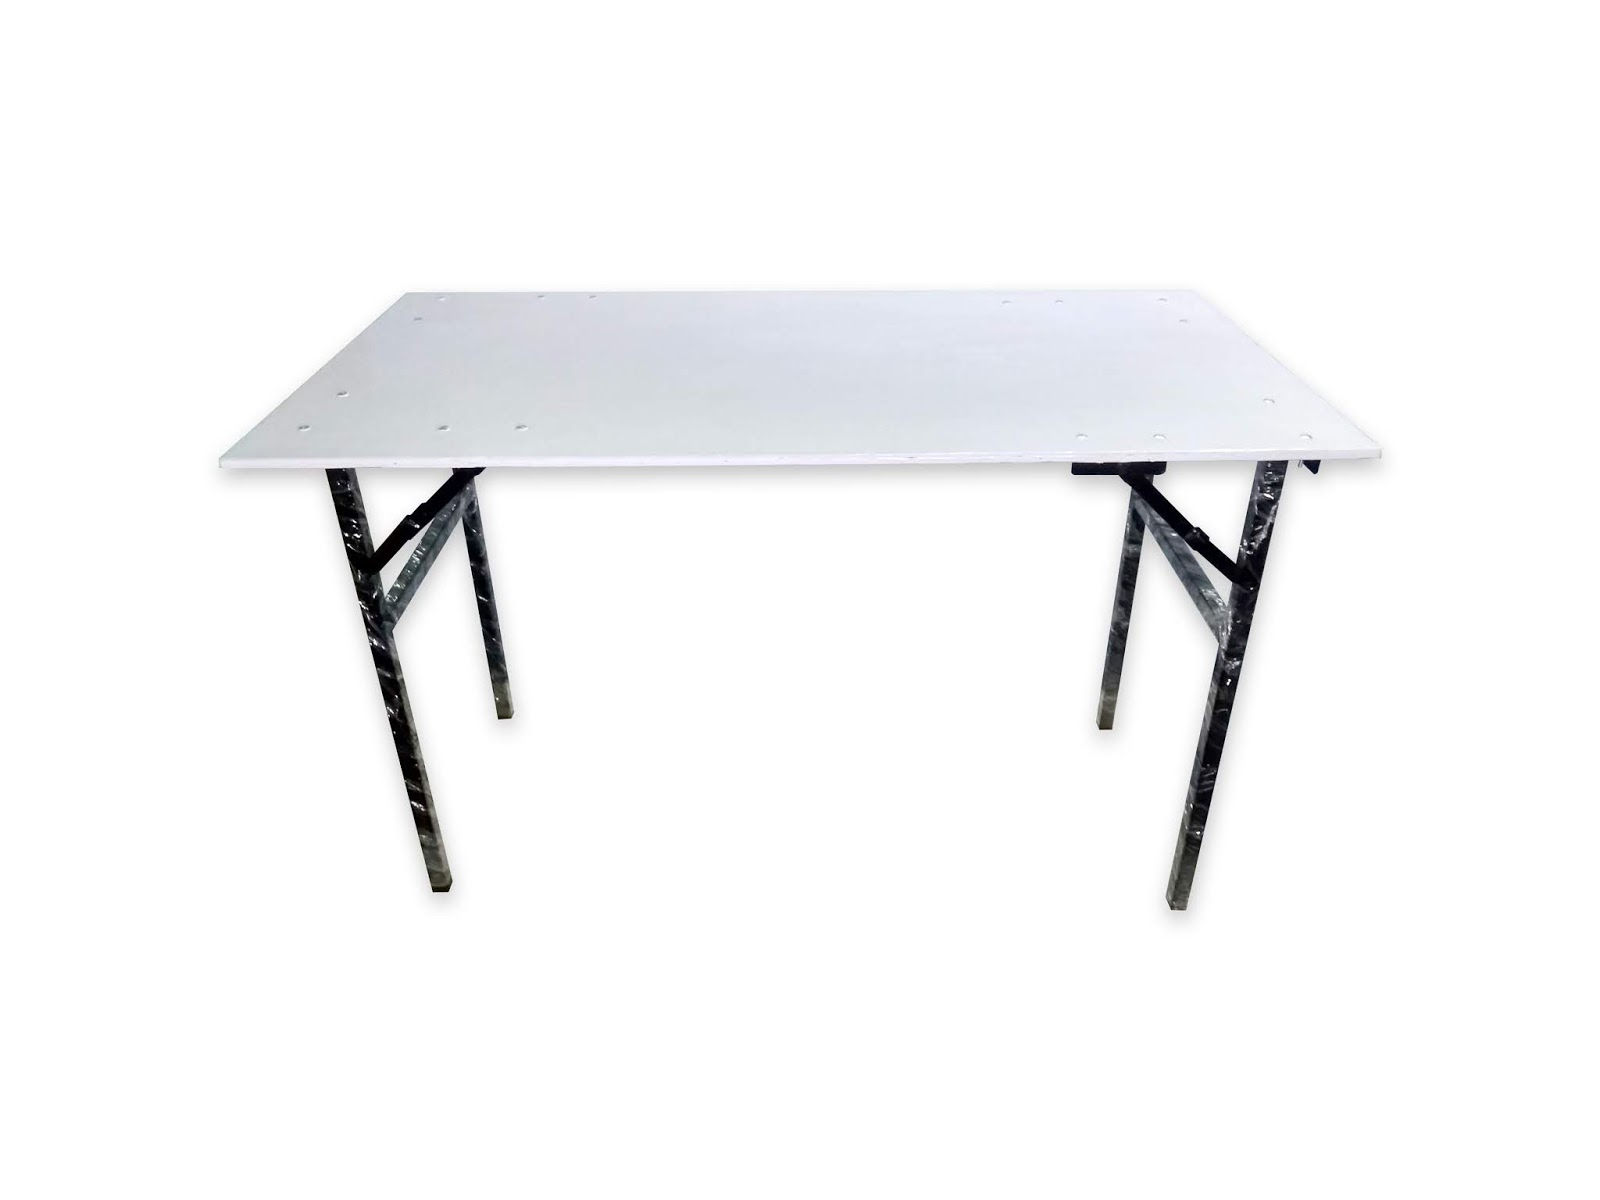 Lightweight Folding Table Price In Vasai 3 X 2 Feet On At Low Rs 1 499 Per Upto 88 Off